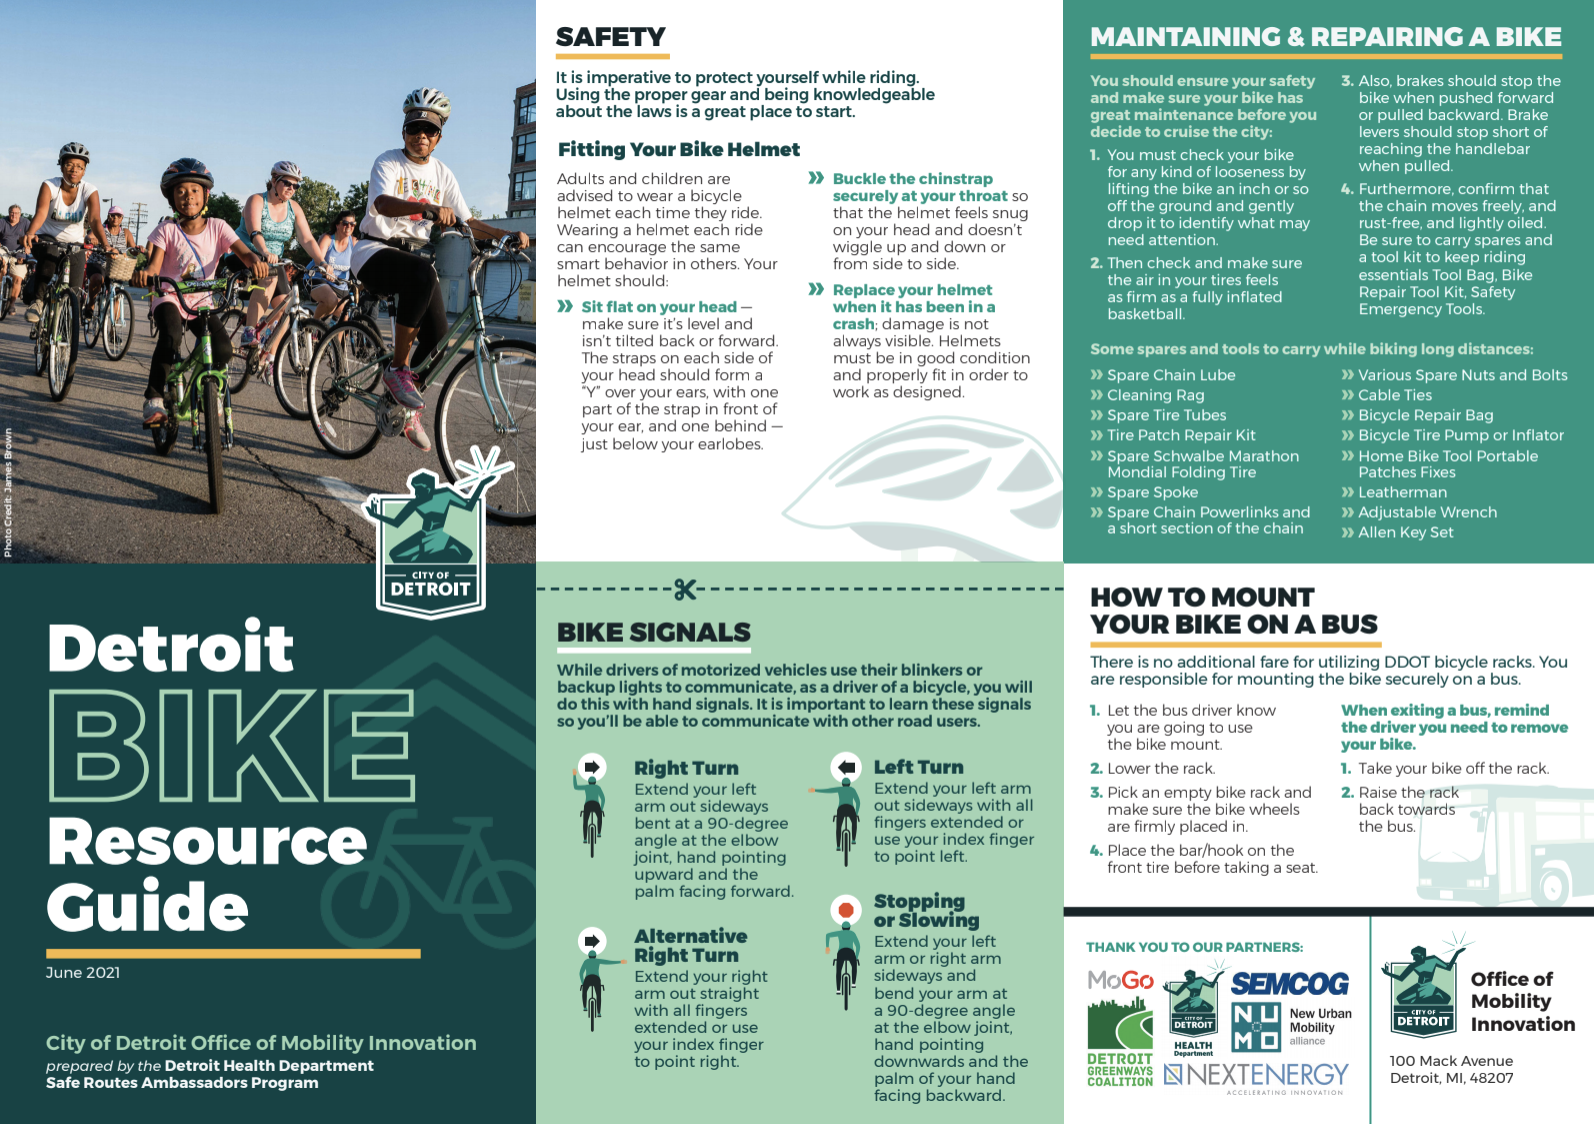 Screenshot of the Detroit Bike Resource Guide outlining safety tips, arm signals and more